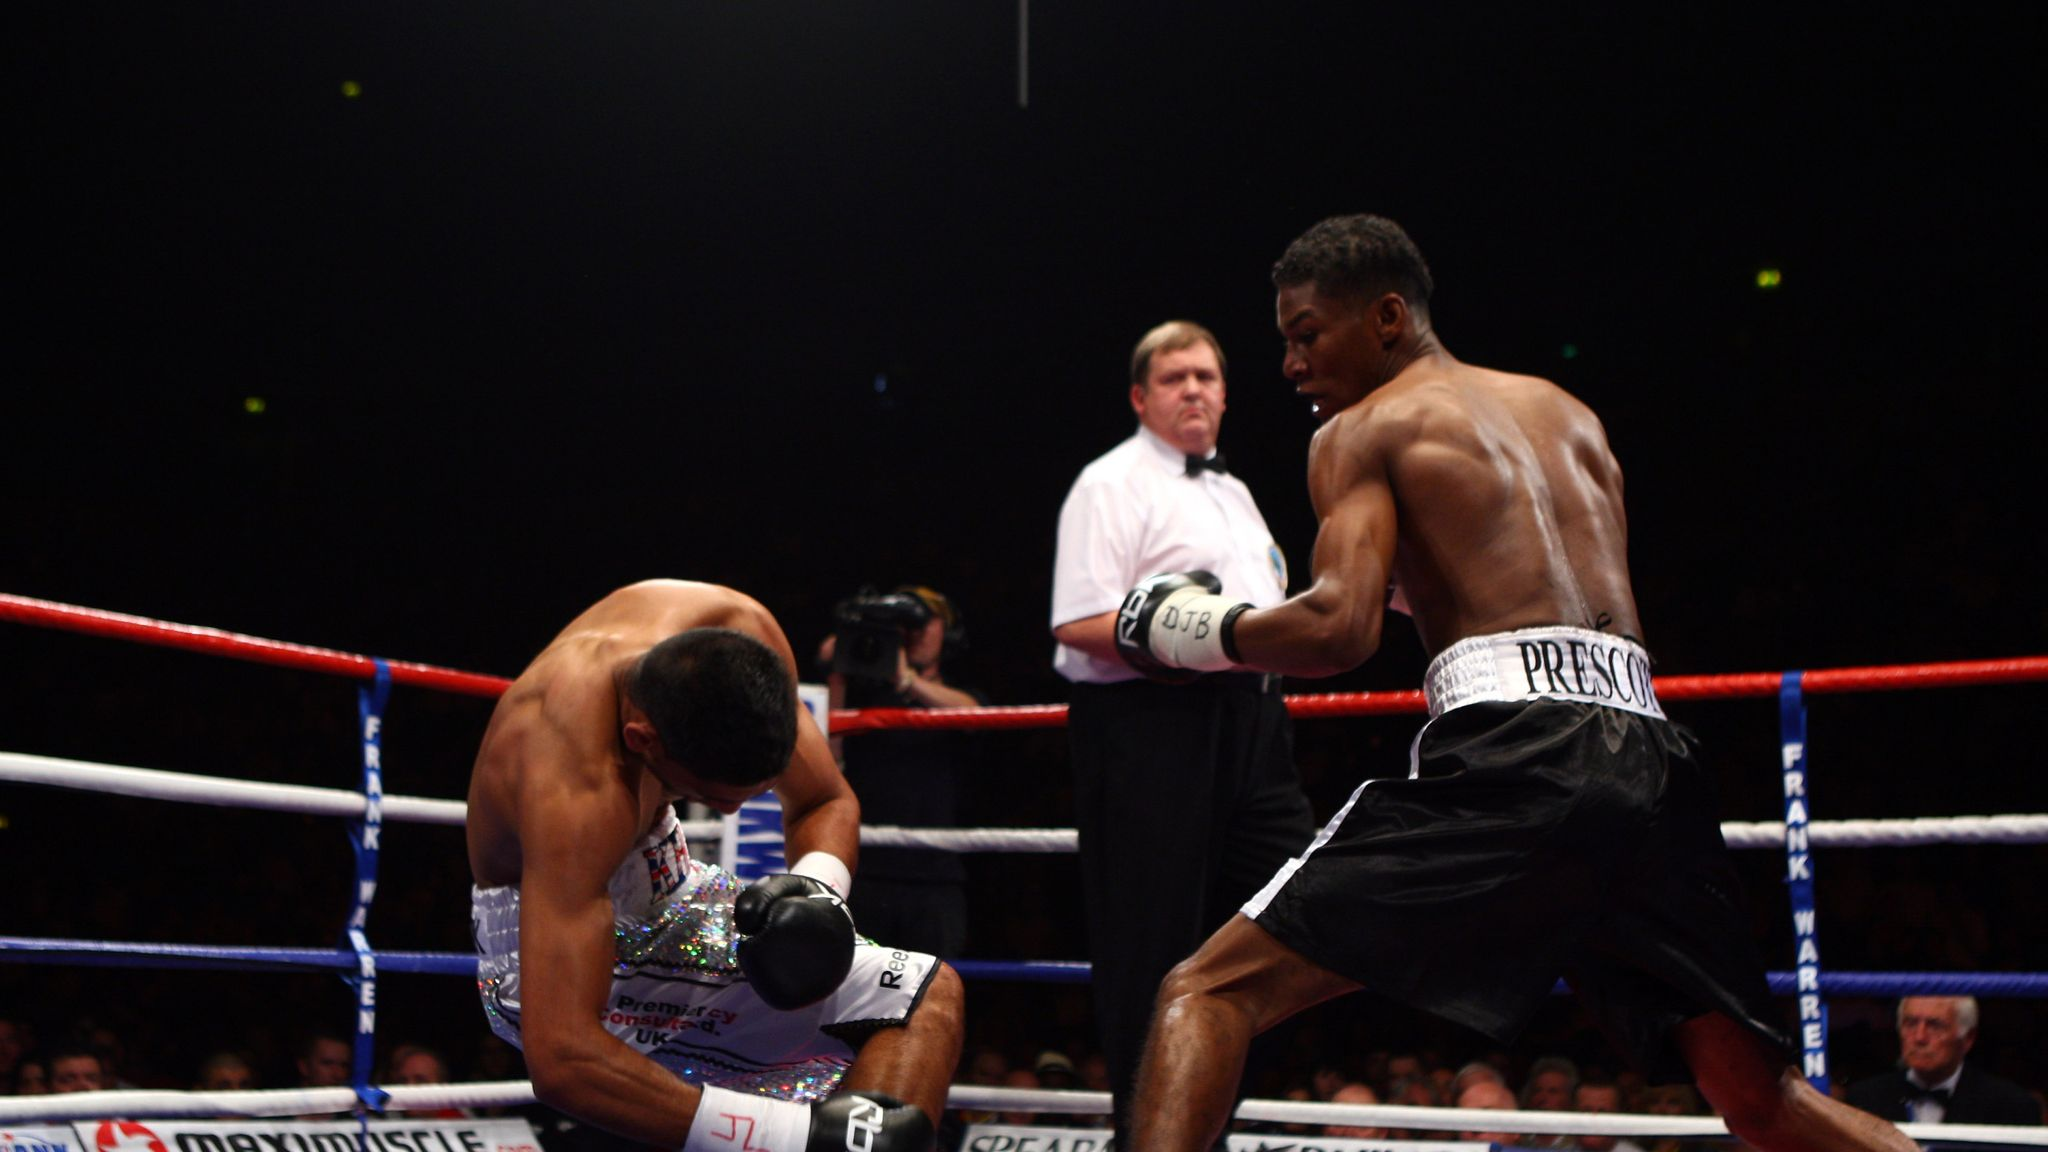 Breidis Prescott (right) vs. Amir Khan. Image courtesy of SKY Sports